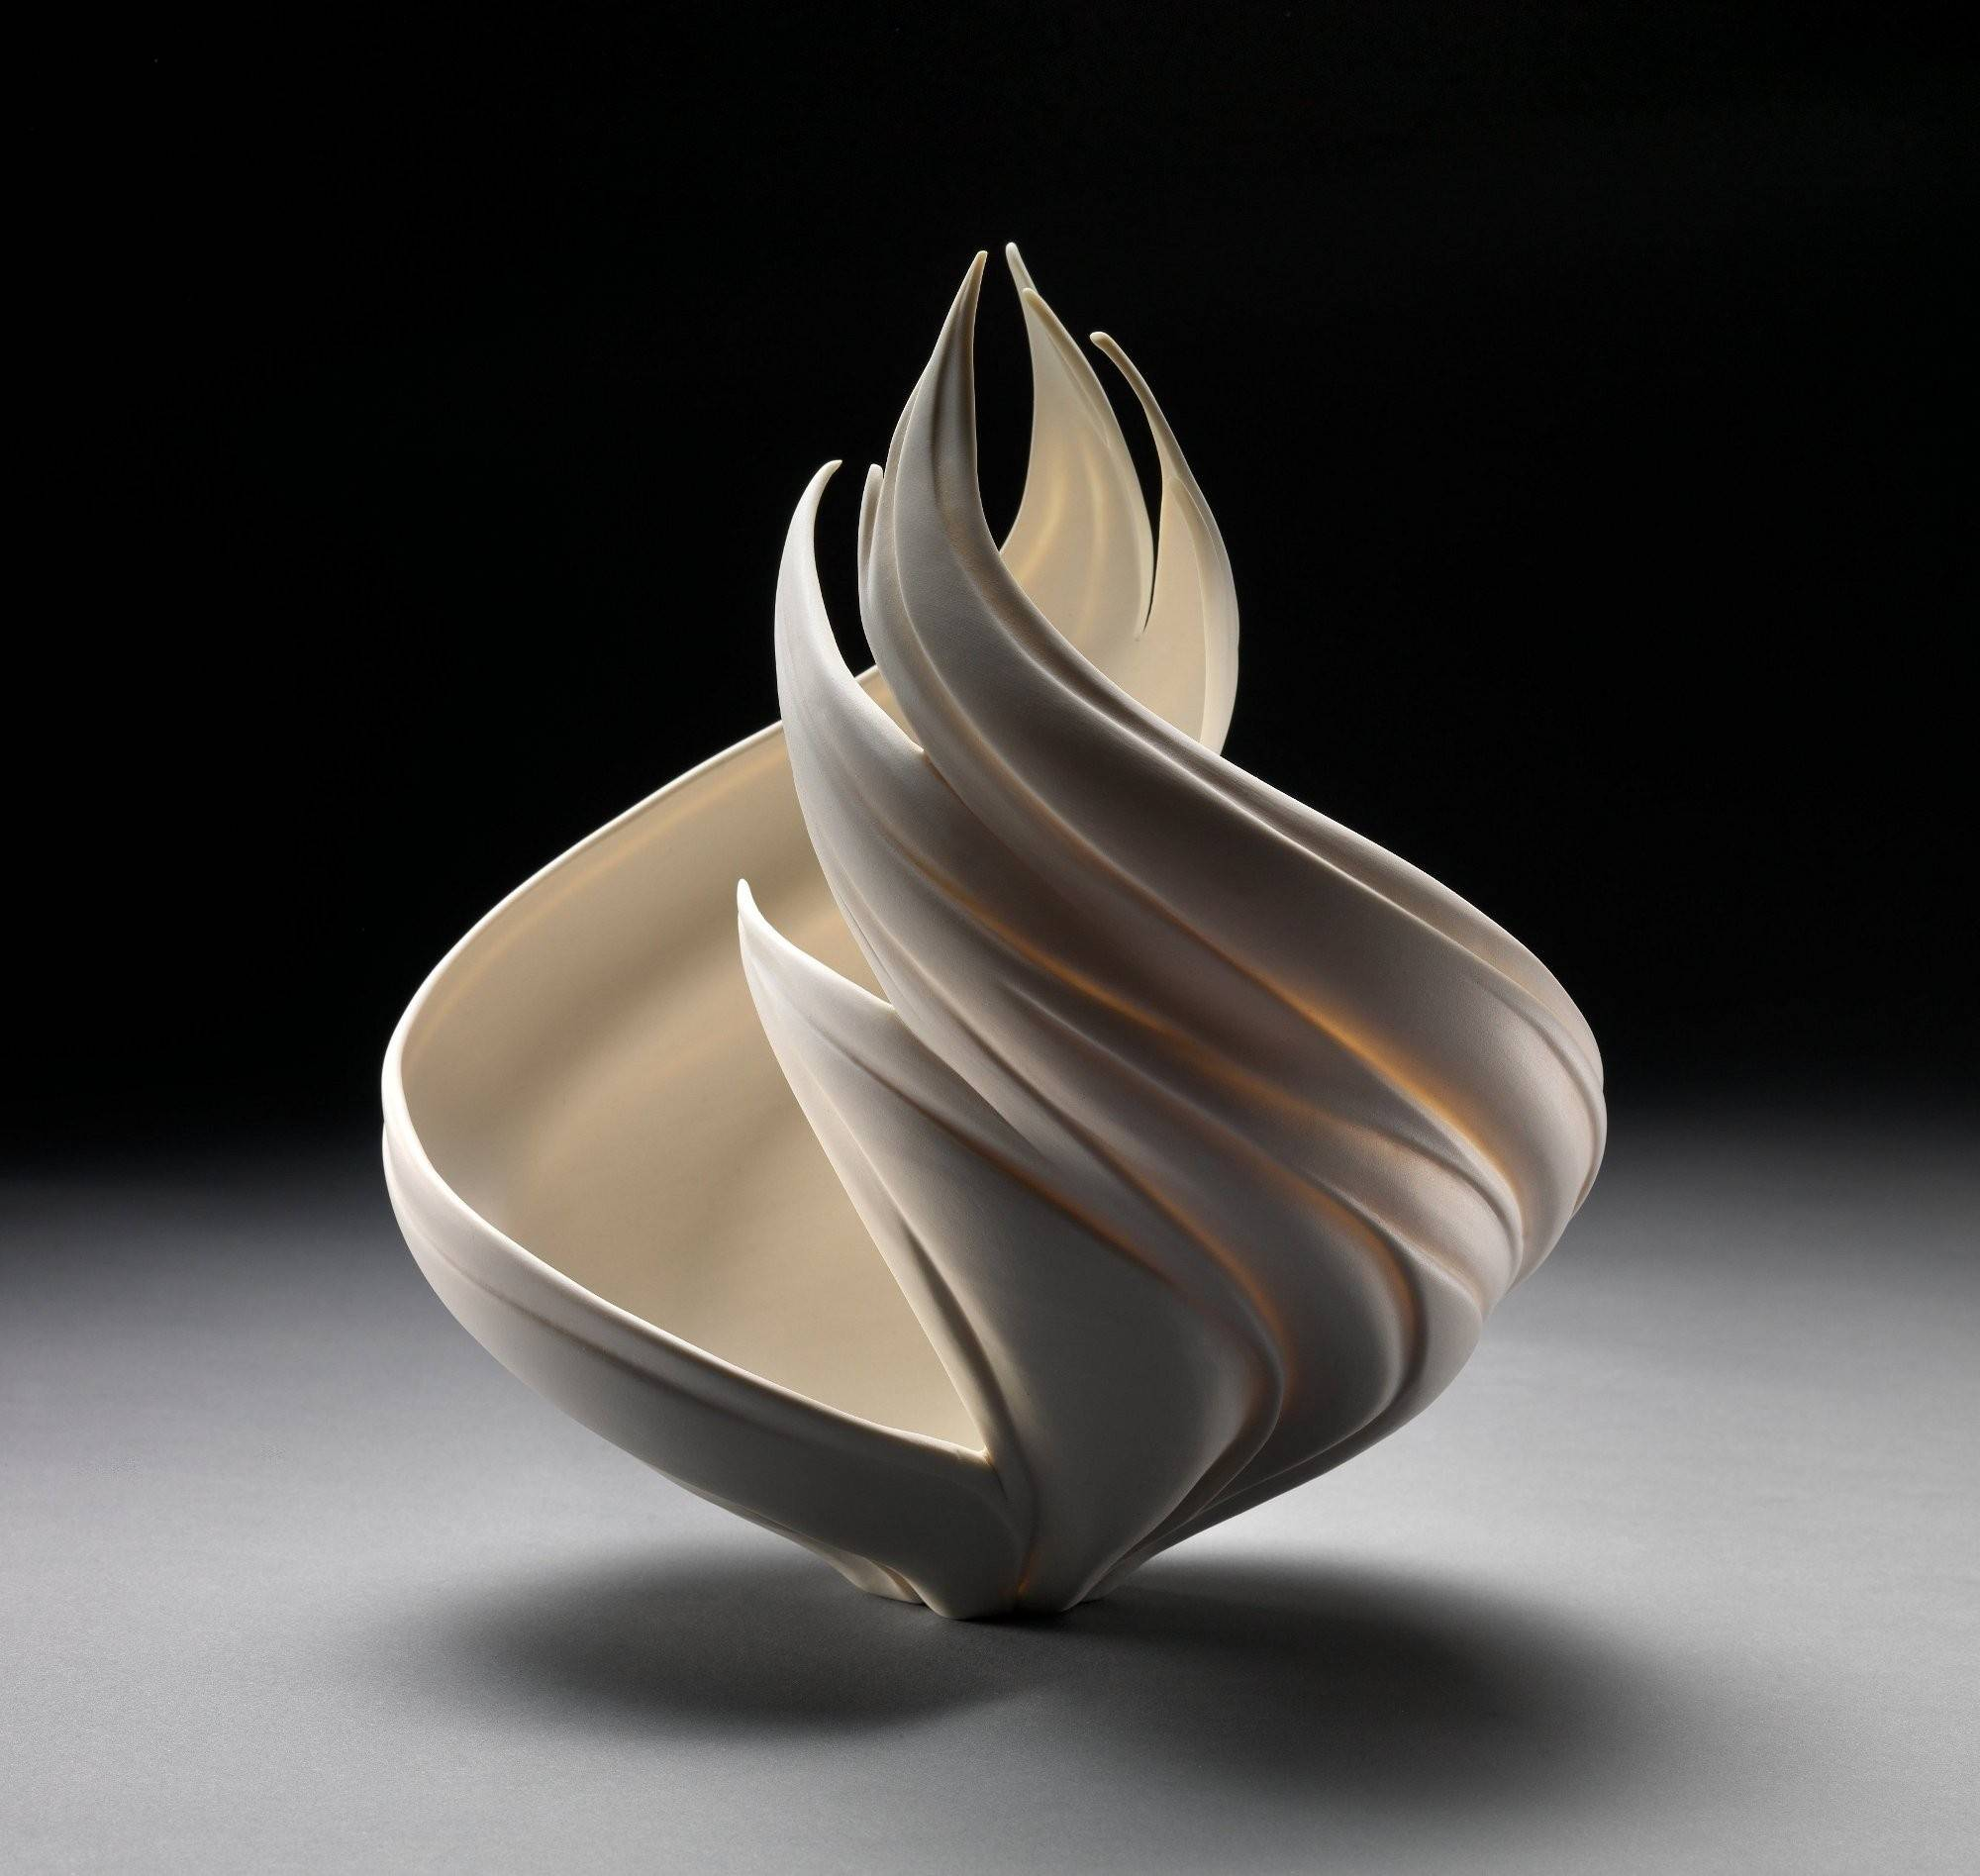 See ceramic works by Jennifer McCurdy of Vineyard Haven, Mass., at the American Craft Exposition at Northwestern University's Henry Crown Sports Pavilion in Evanston through Sunday, Aug. 24.